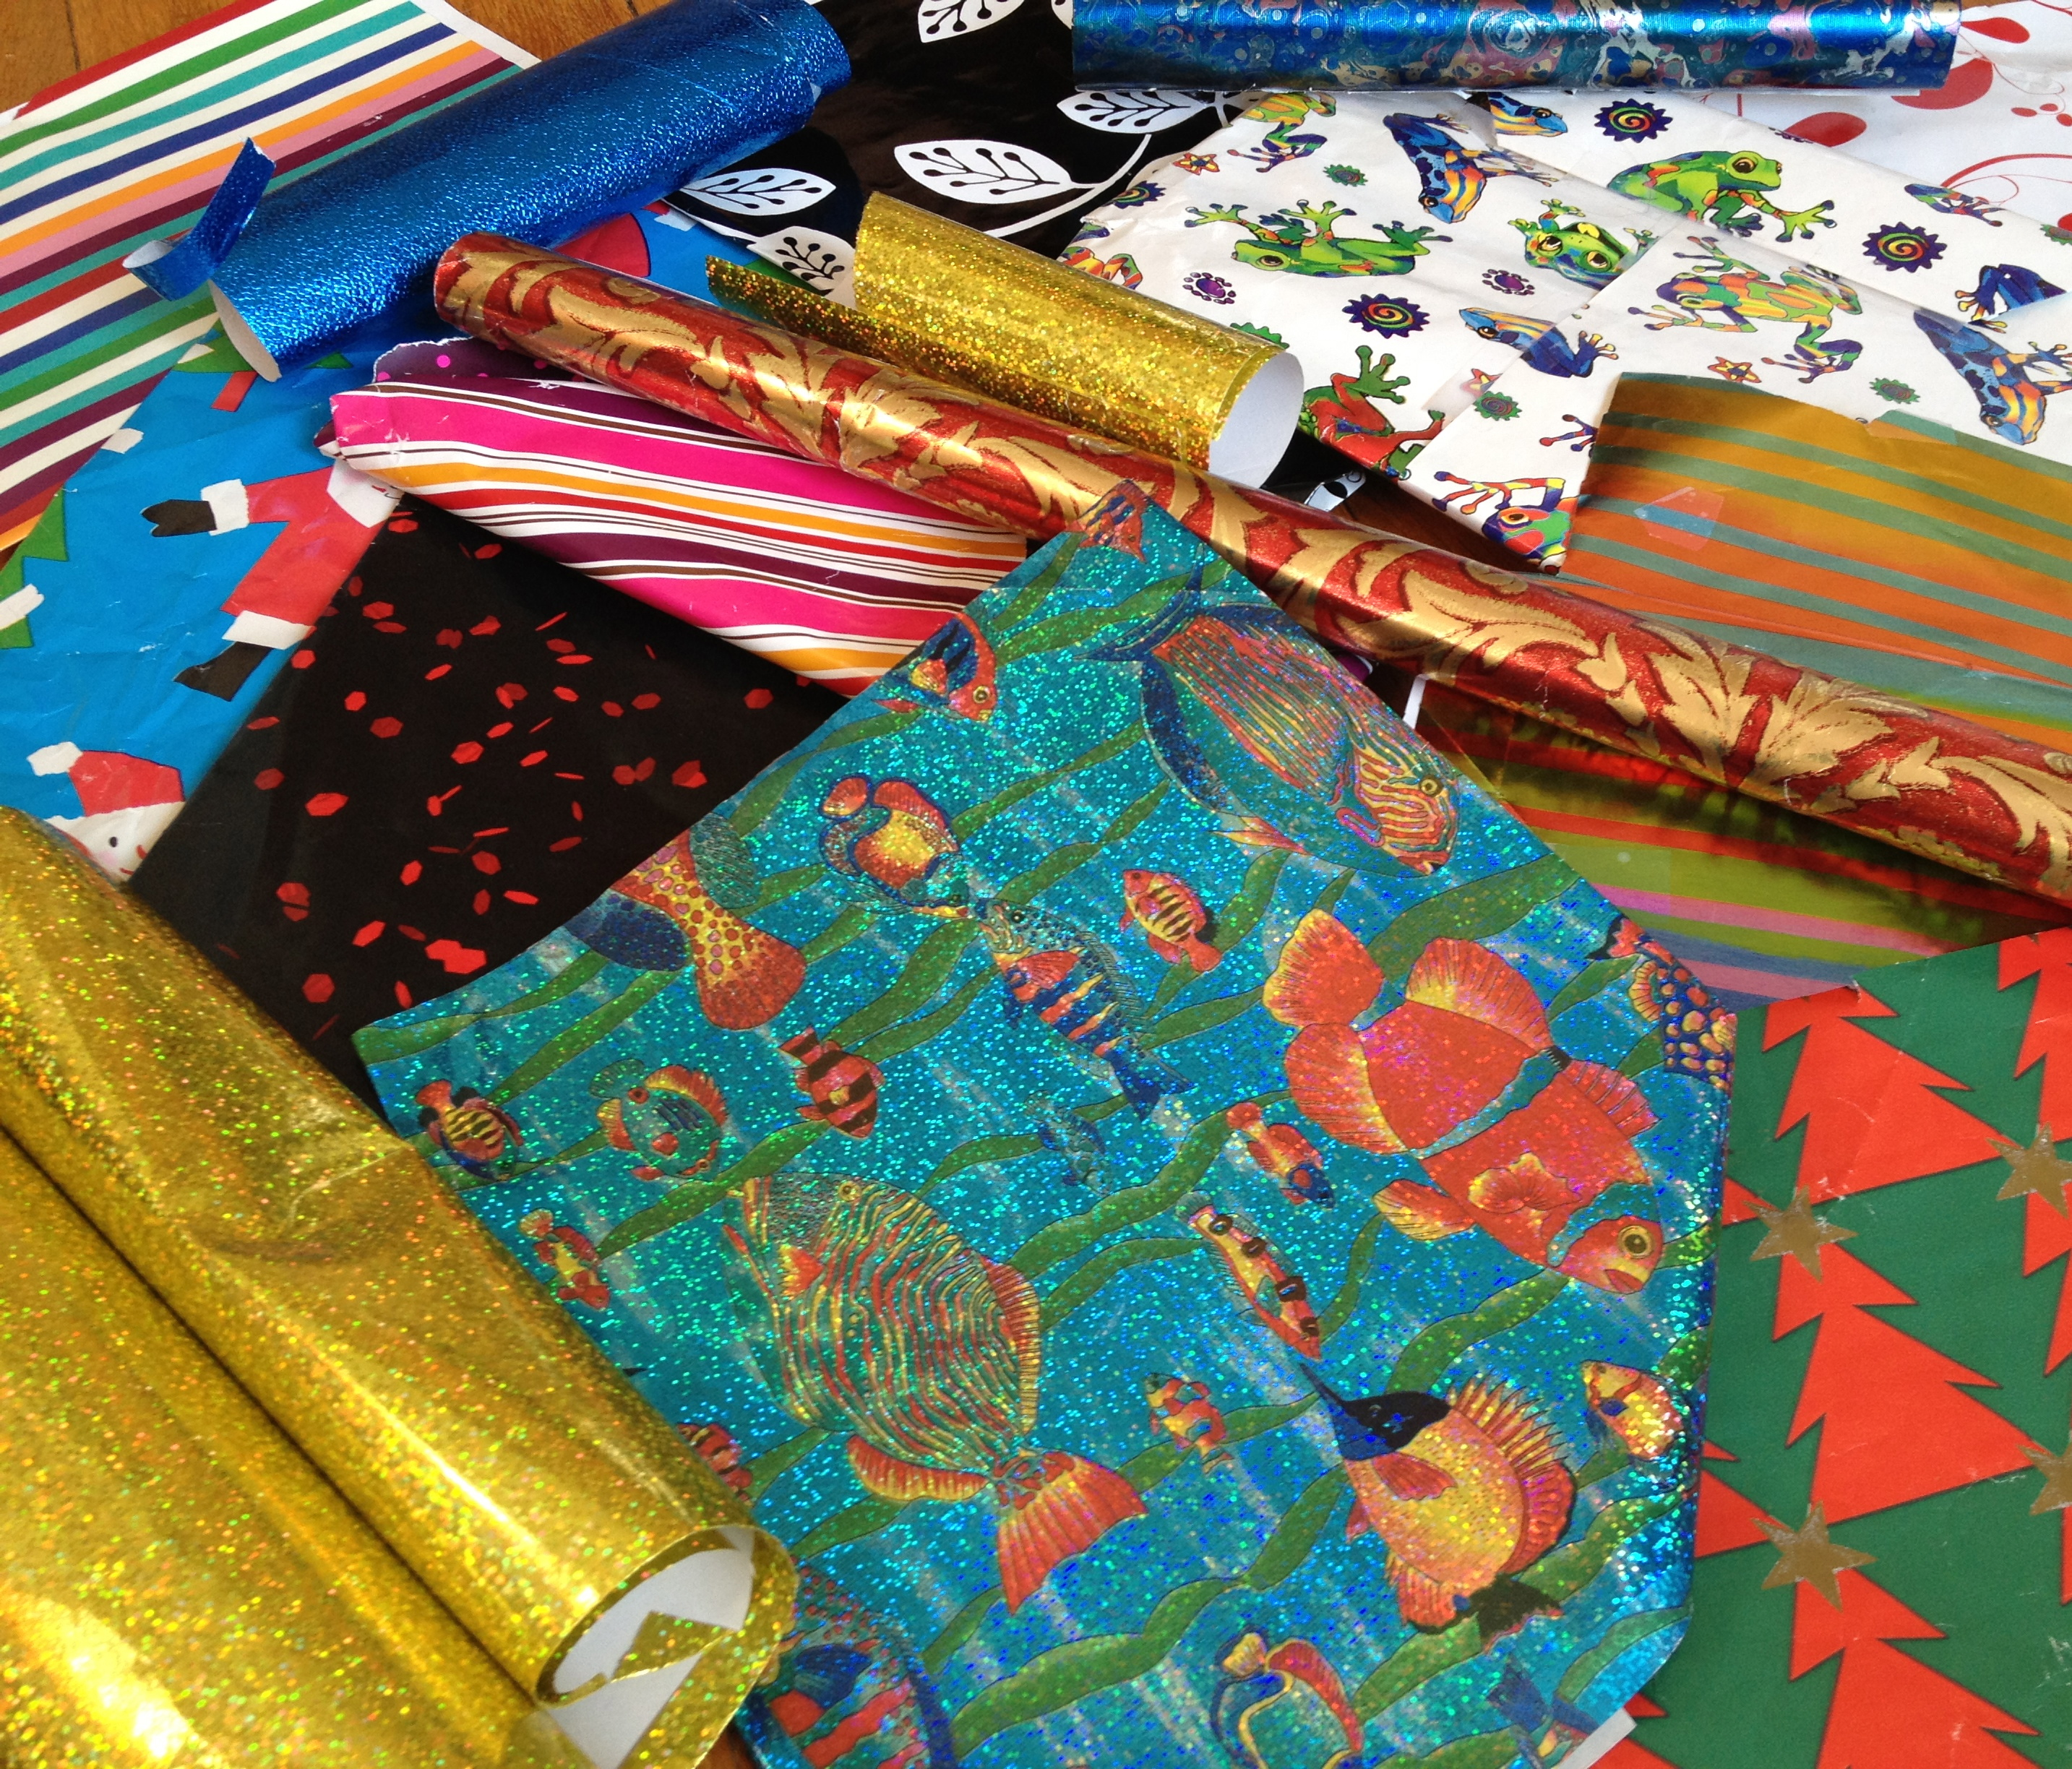 Ten uses for used wrapping paper